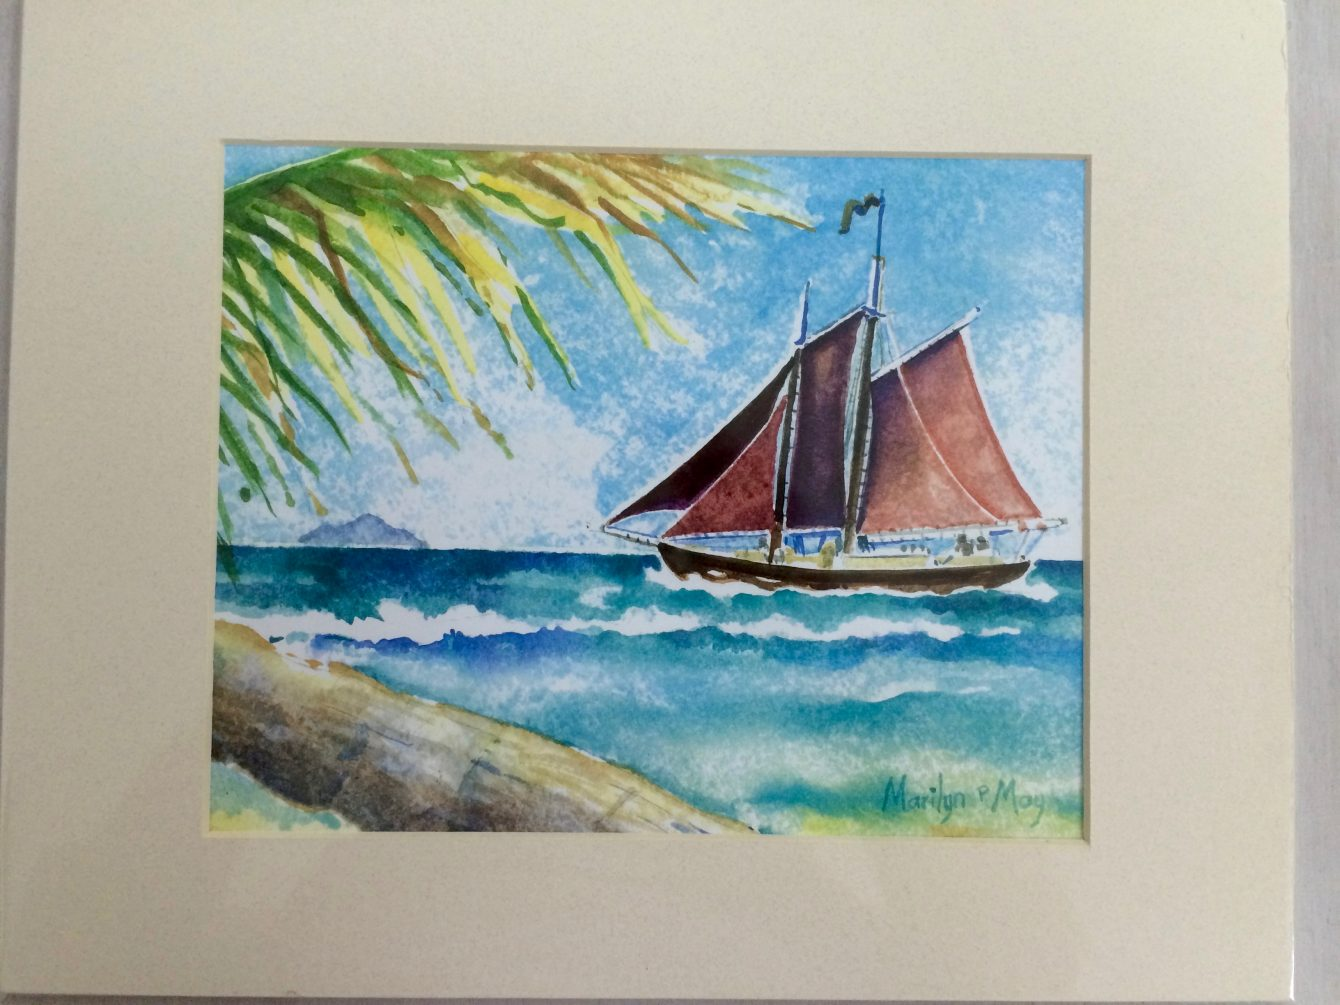 Watercolor of the Roseway, by Marilyn May